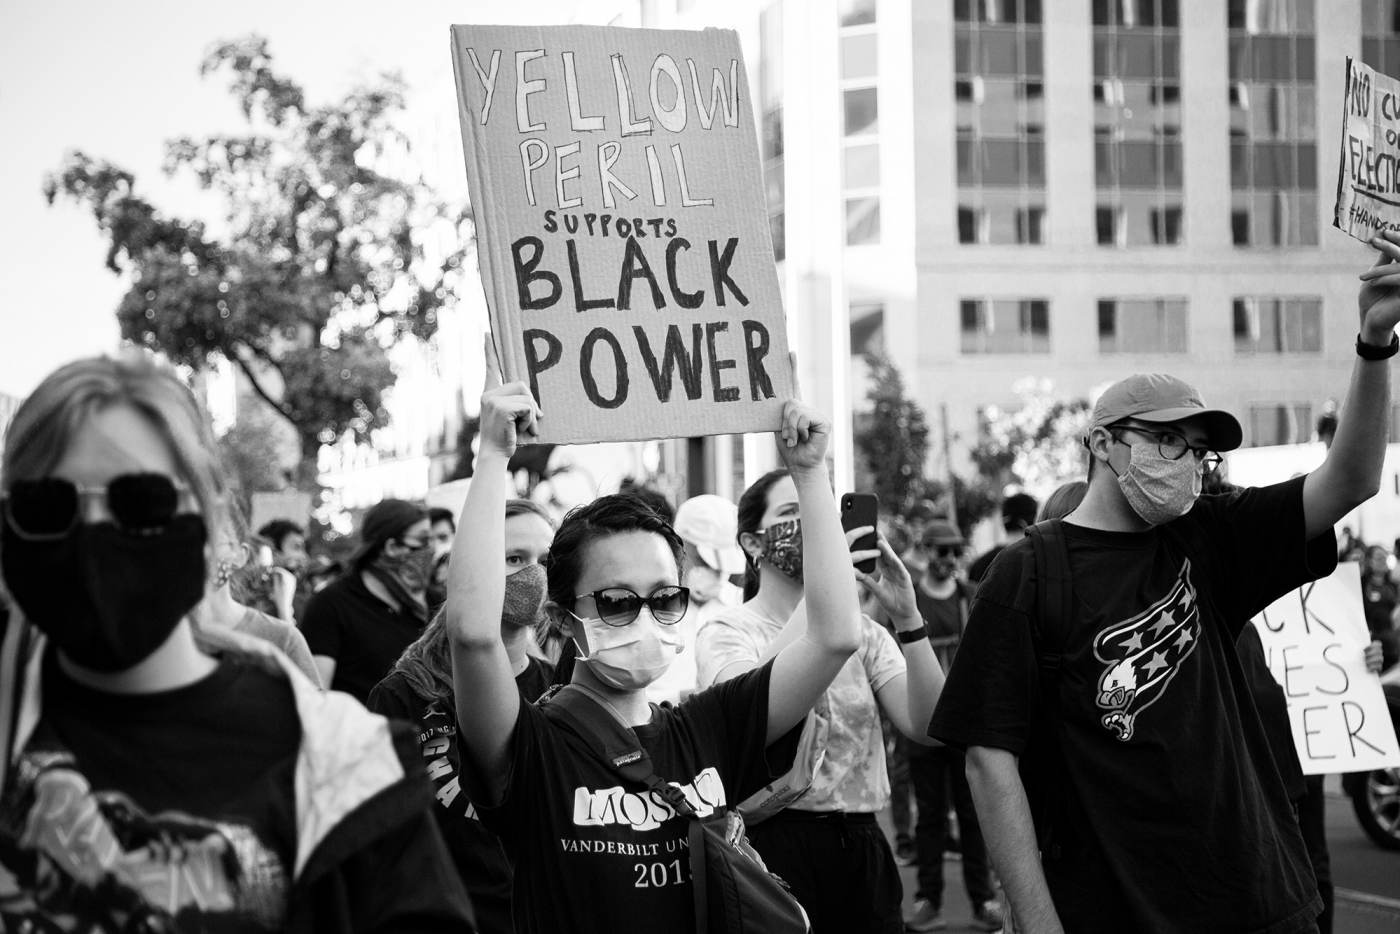 """Asians for Black Lives: An unnamed woman at a Black Lives Matter rally near the White House, Washington DC. She is holding a sign that says """"Yellow Peril Supports Black Power.""""  Photograph by Mengyu Dong"""